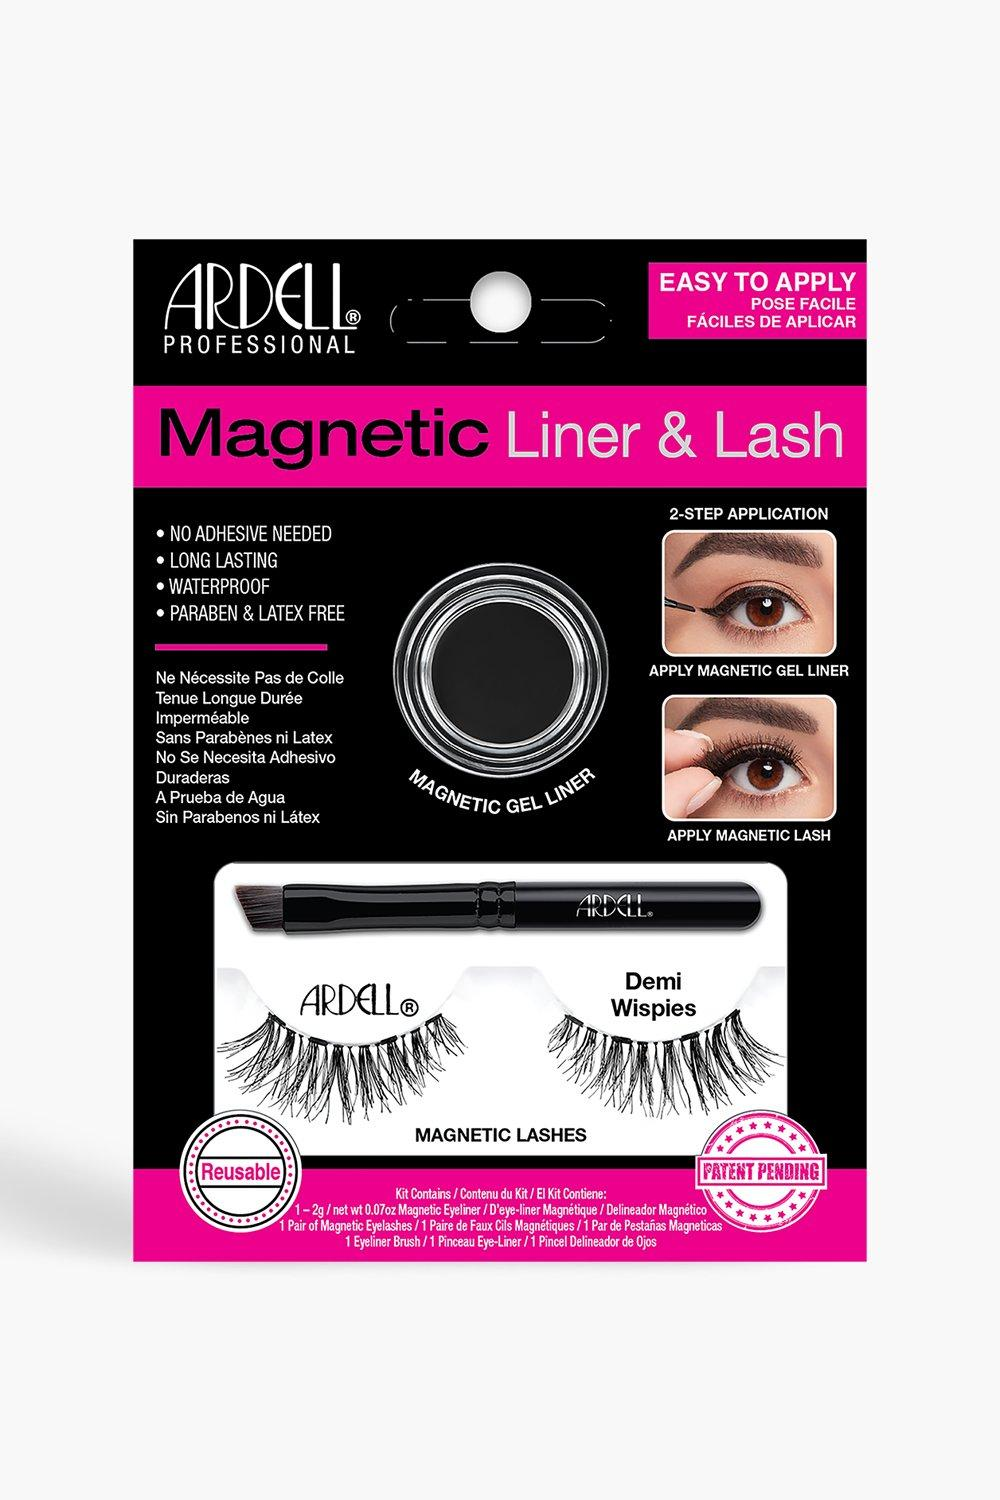 Ardell Womens Ardell Magnetic Demi Wispies Lash Kit - Black - One Size, Black